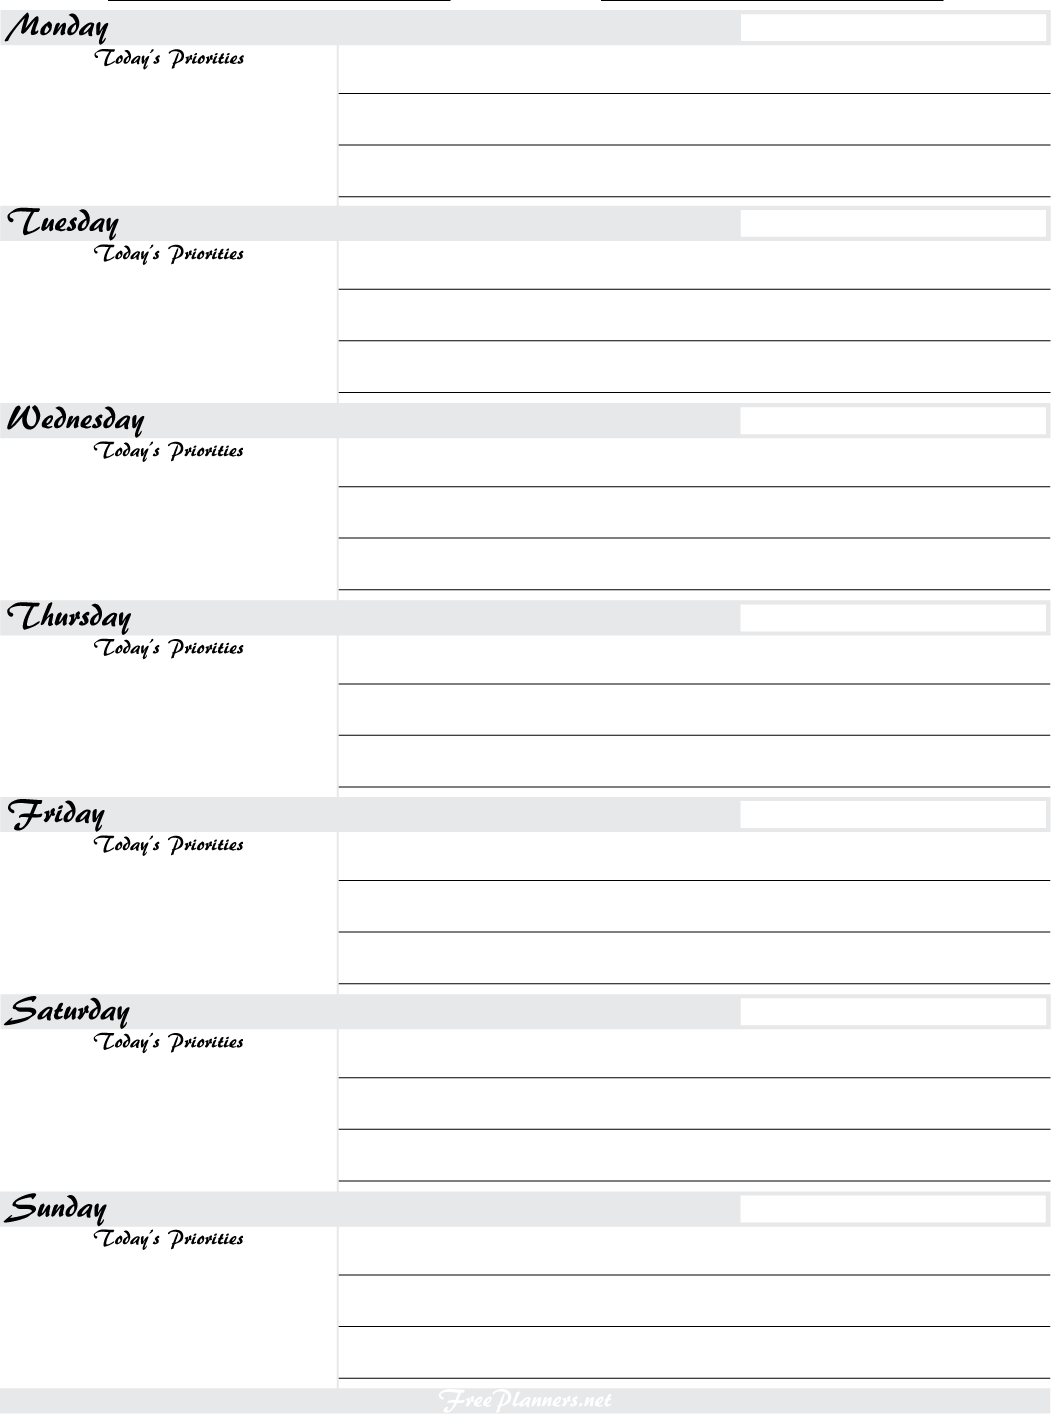 Free Printable Weekly Planners - Printable Weekly Planner Sheets